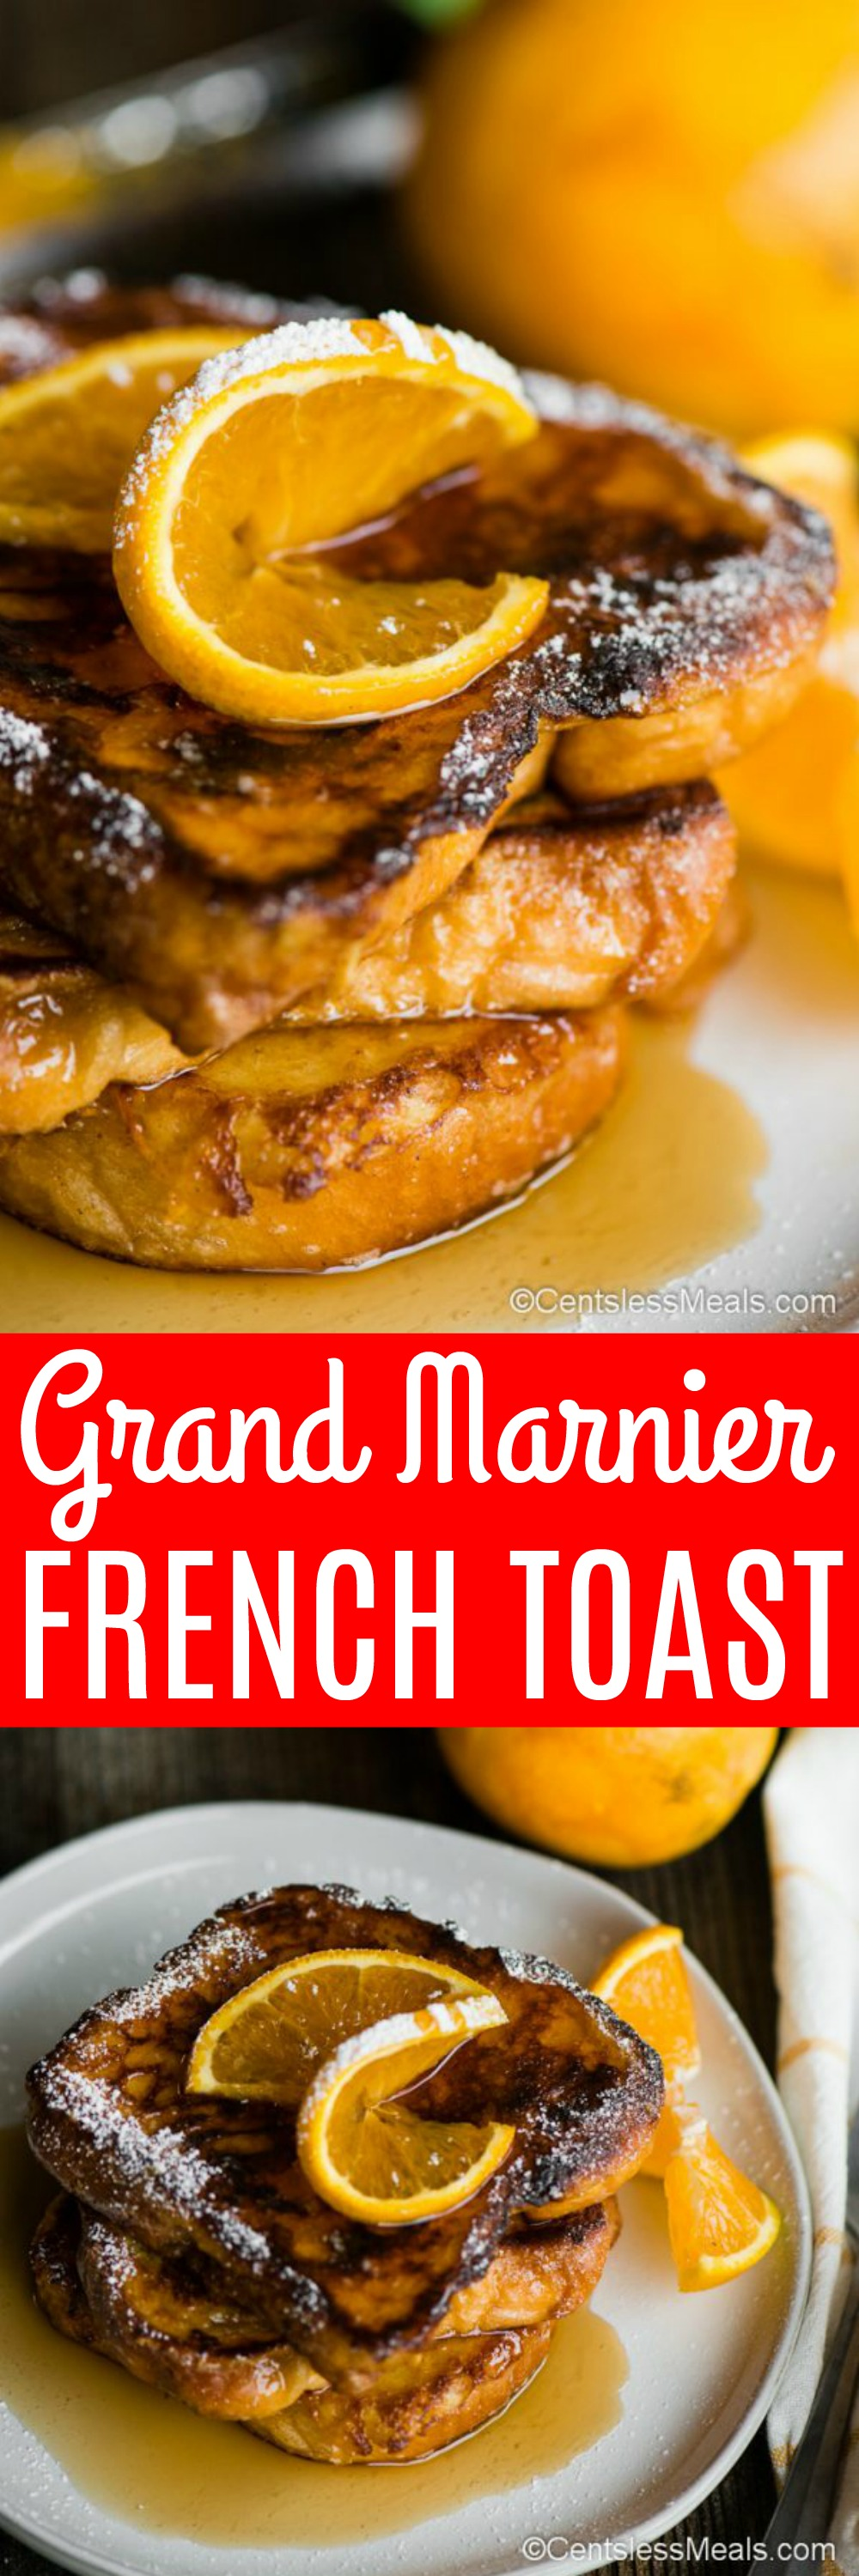 Grand Marnier French Toast is a decadent breakfast that combines soft brioche bread with a delicious orange liqueur for the best french toast! Not only is this a super easy recipe, but it's one that your entire family will love. #centslessmeals #frenchtoast #withliquor #grandmarnier #easyrecipe #easybrunch #easybreakfast #withbrioche